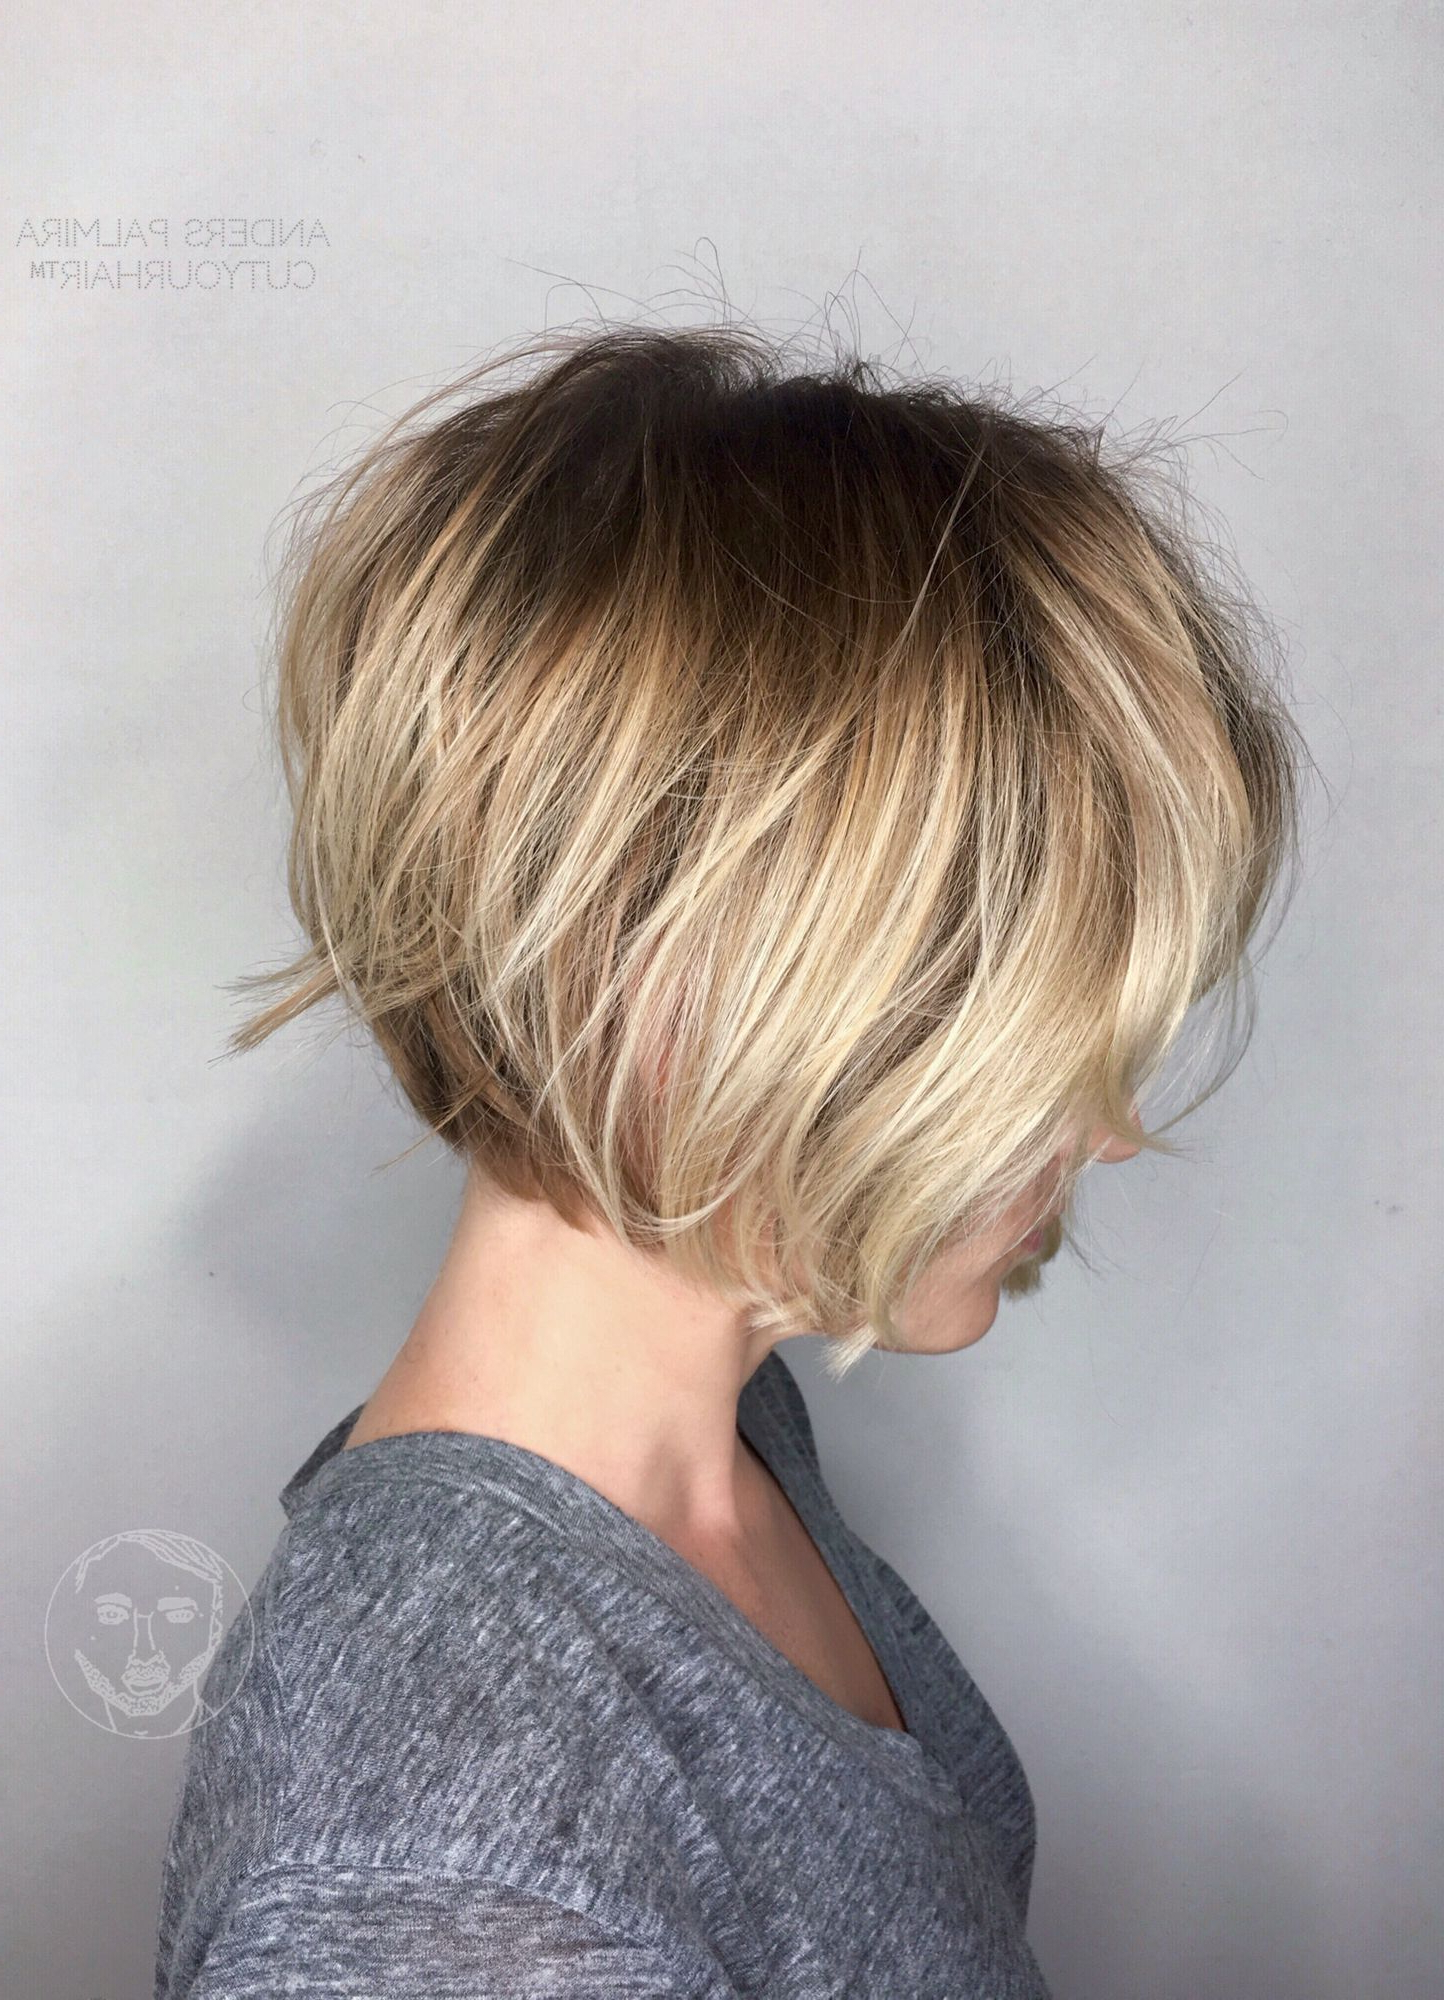 Aveda Wavy Long Blonde Bob Short Hair Beach Wave Medium Ideas Lob With Short Ruffled Hairstyles With Blonde Highlights (View 7 of 20)